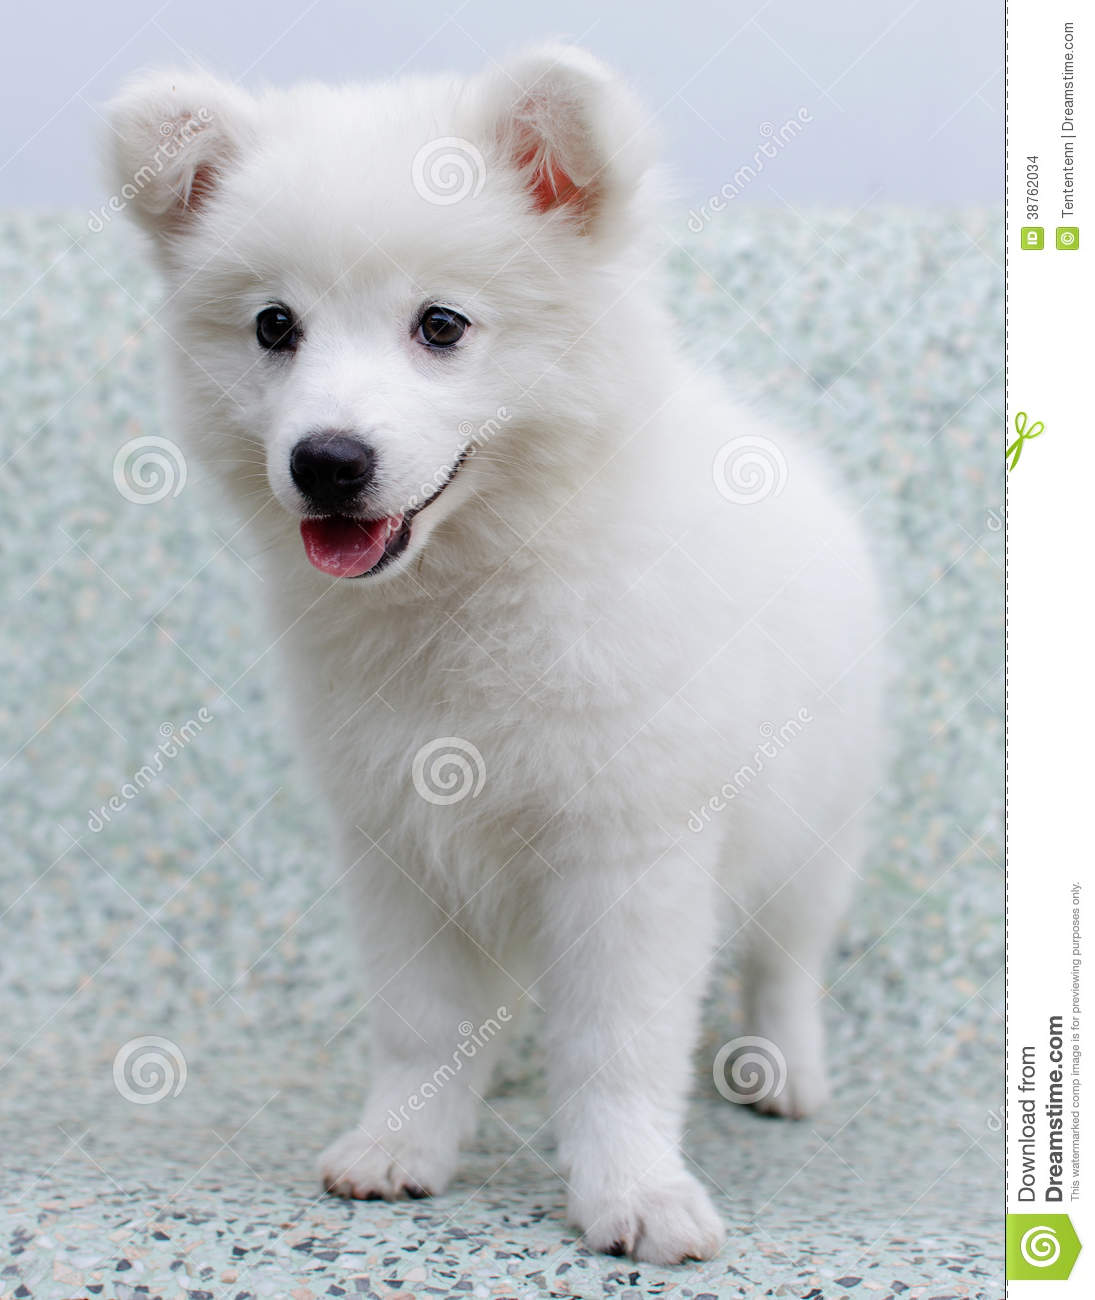 White Japanese Spitz Puppy Dog Stock Images - Image: 38762034